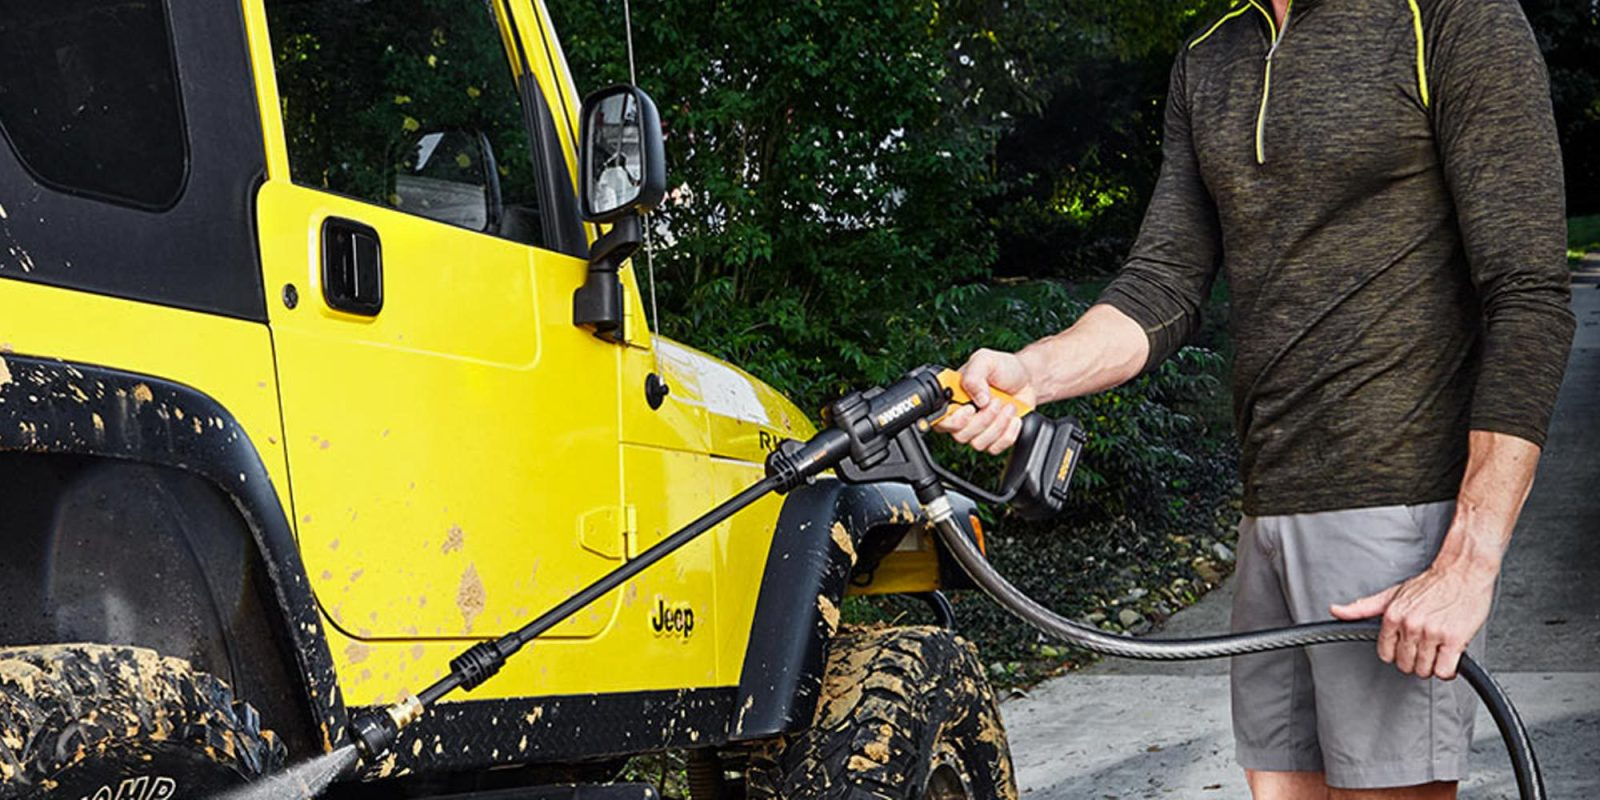 WORX Hydroshot is a simple electric pressure washer, now $40 (Refurb, Orig. $119)